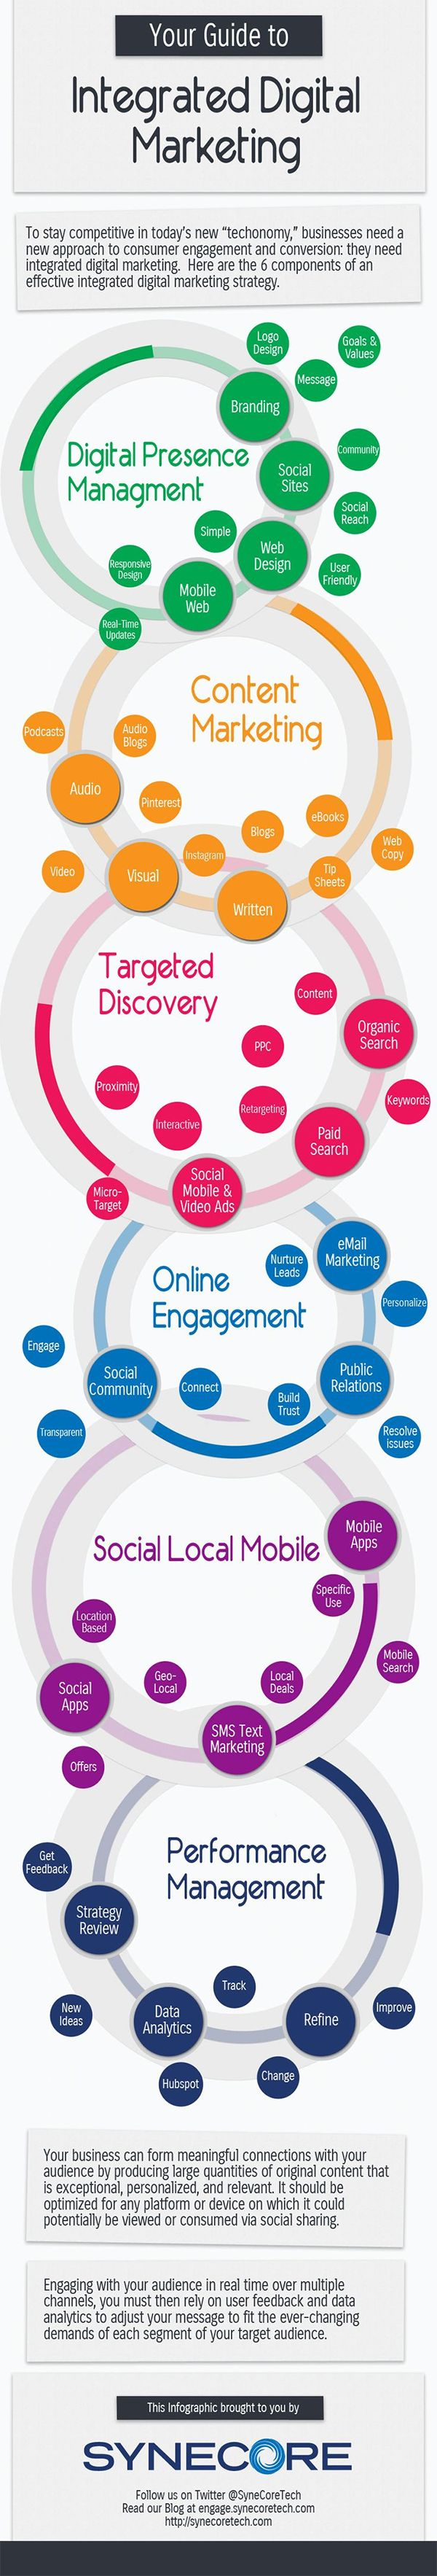 """DIGITAL MARKETING -         """"Your Guide to Integrated Digital Marketing""""."""